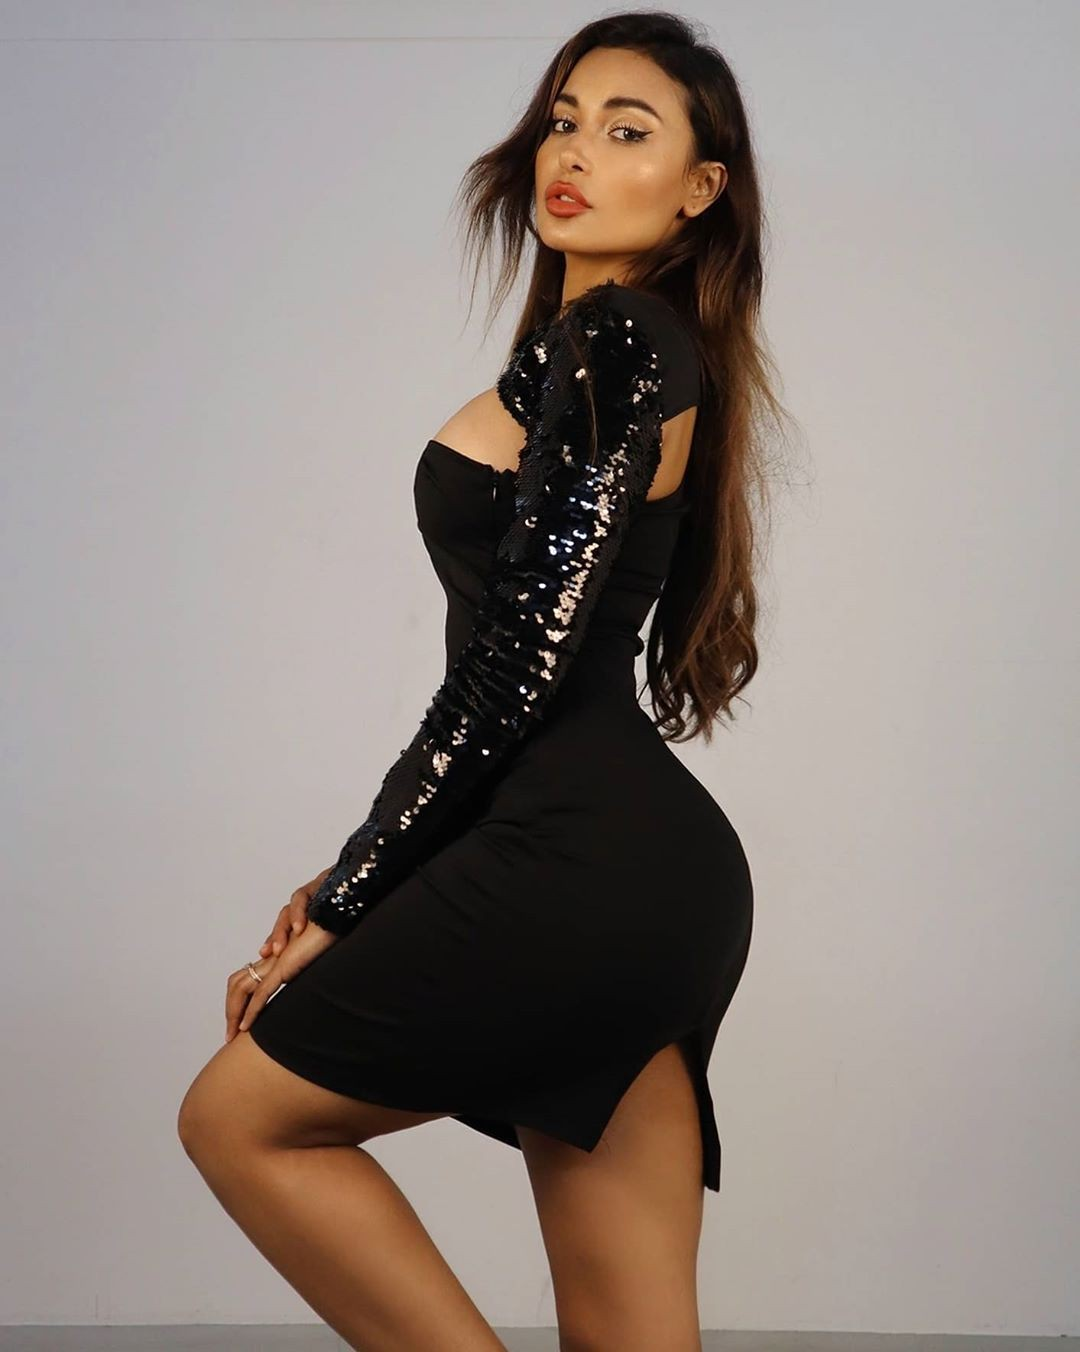 black outfits for women with cocktail dress, woman thighs